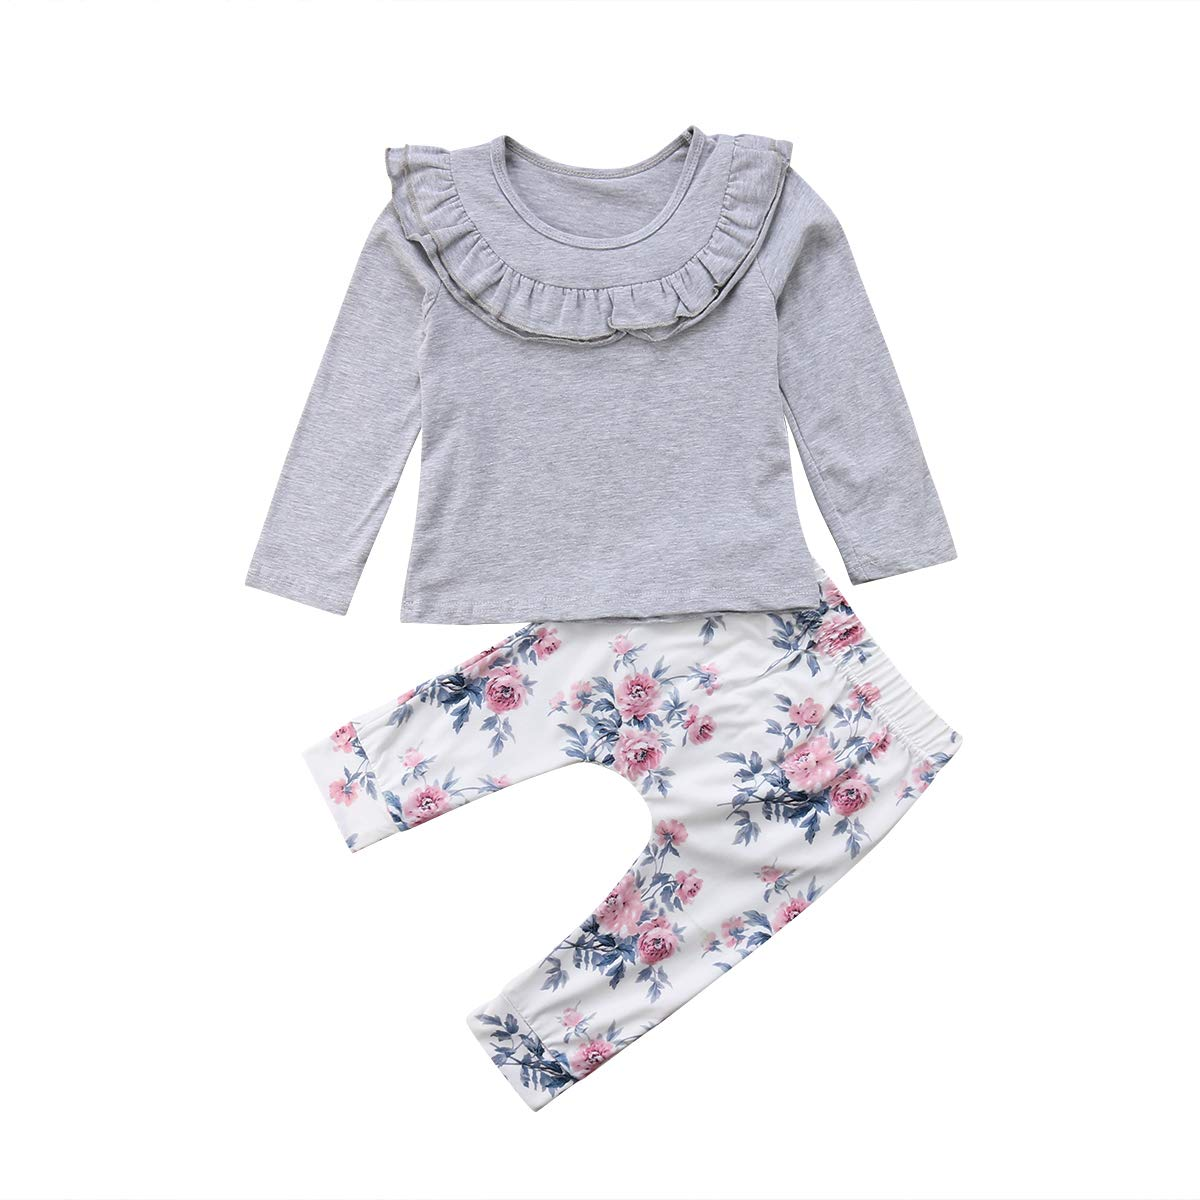 Baby Girls Long Sleeve Solid Color Ruffle Top and Floral Pants Outfit Set 2pcs Fall Winter Clothes